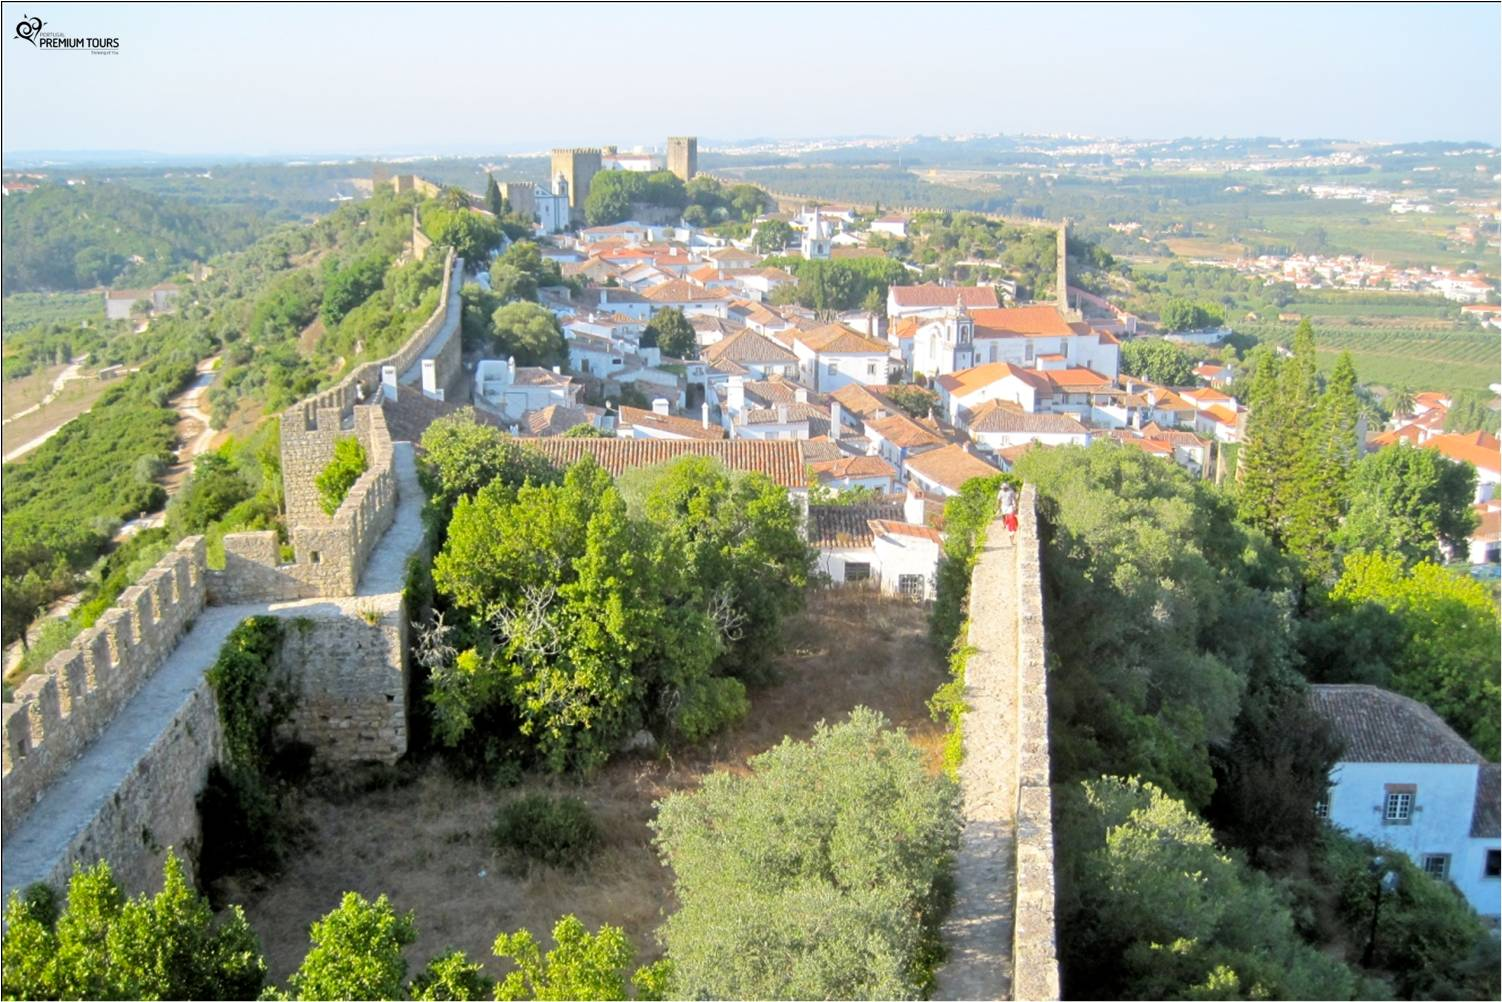 Come explore the village of Óbidos